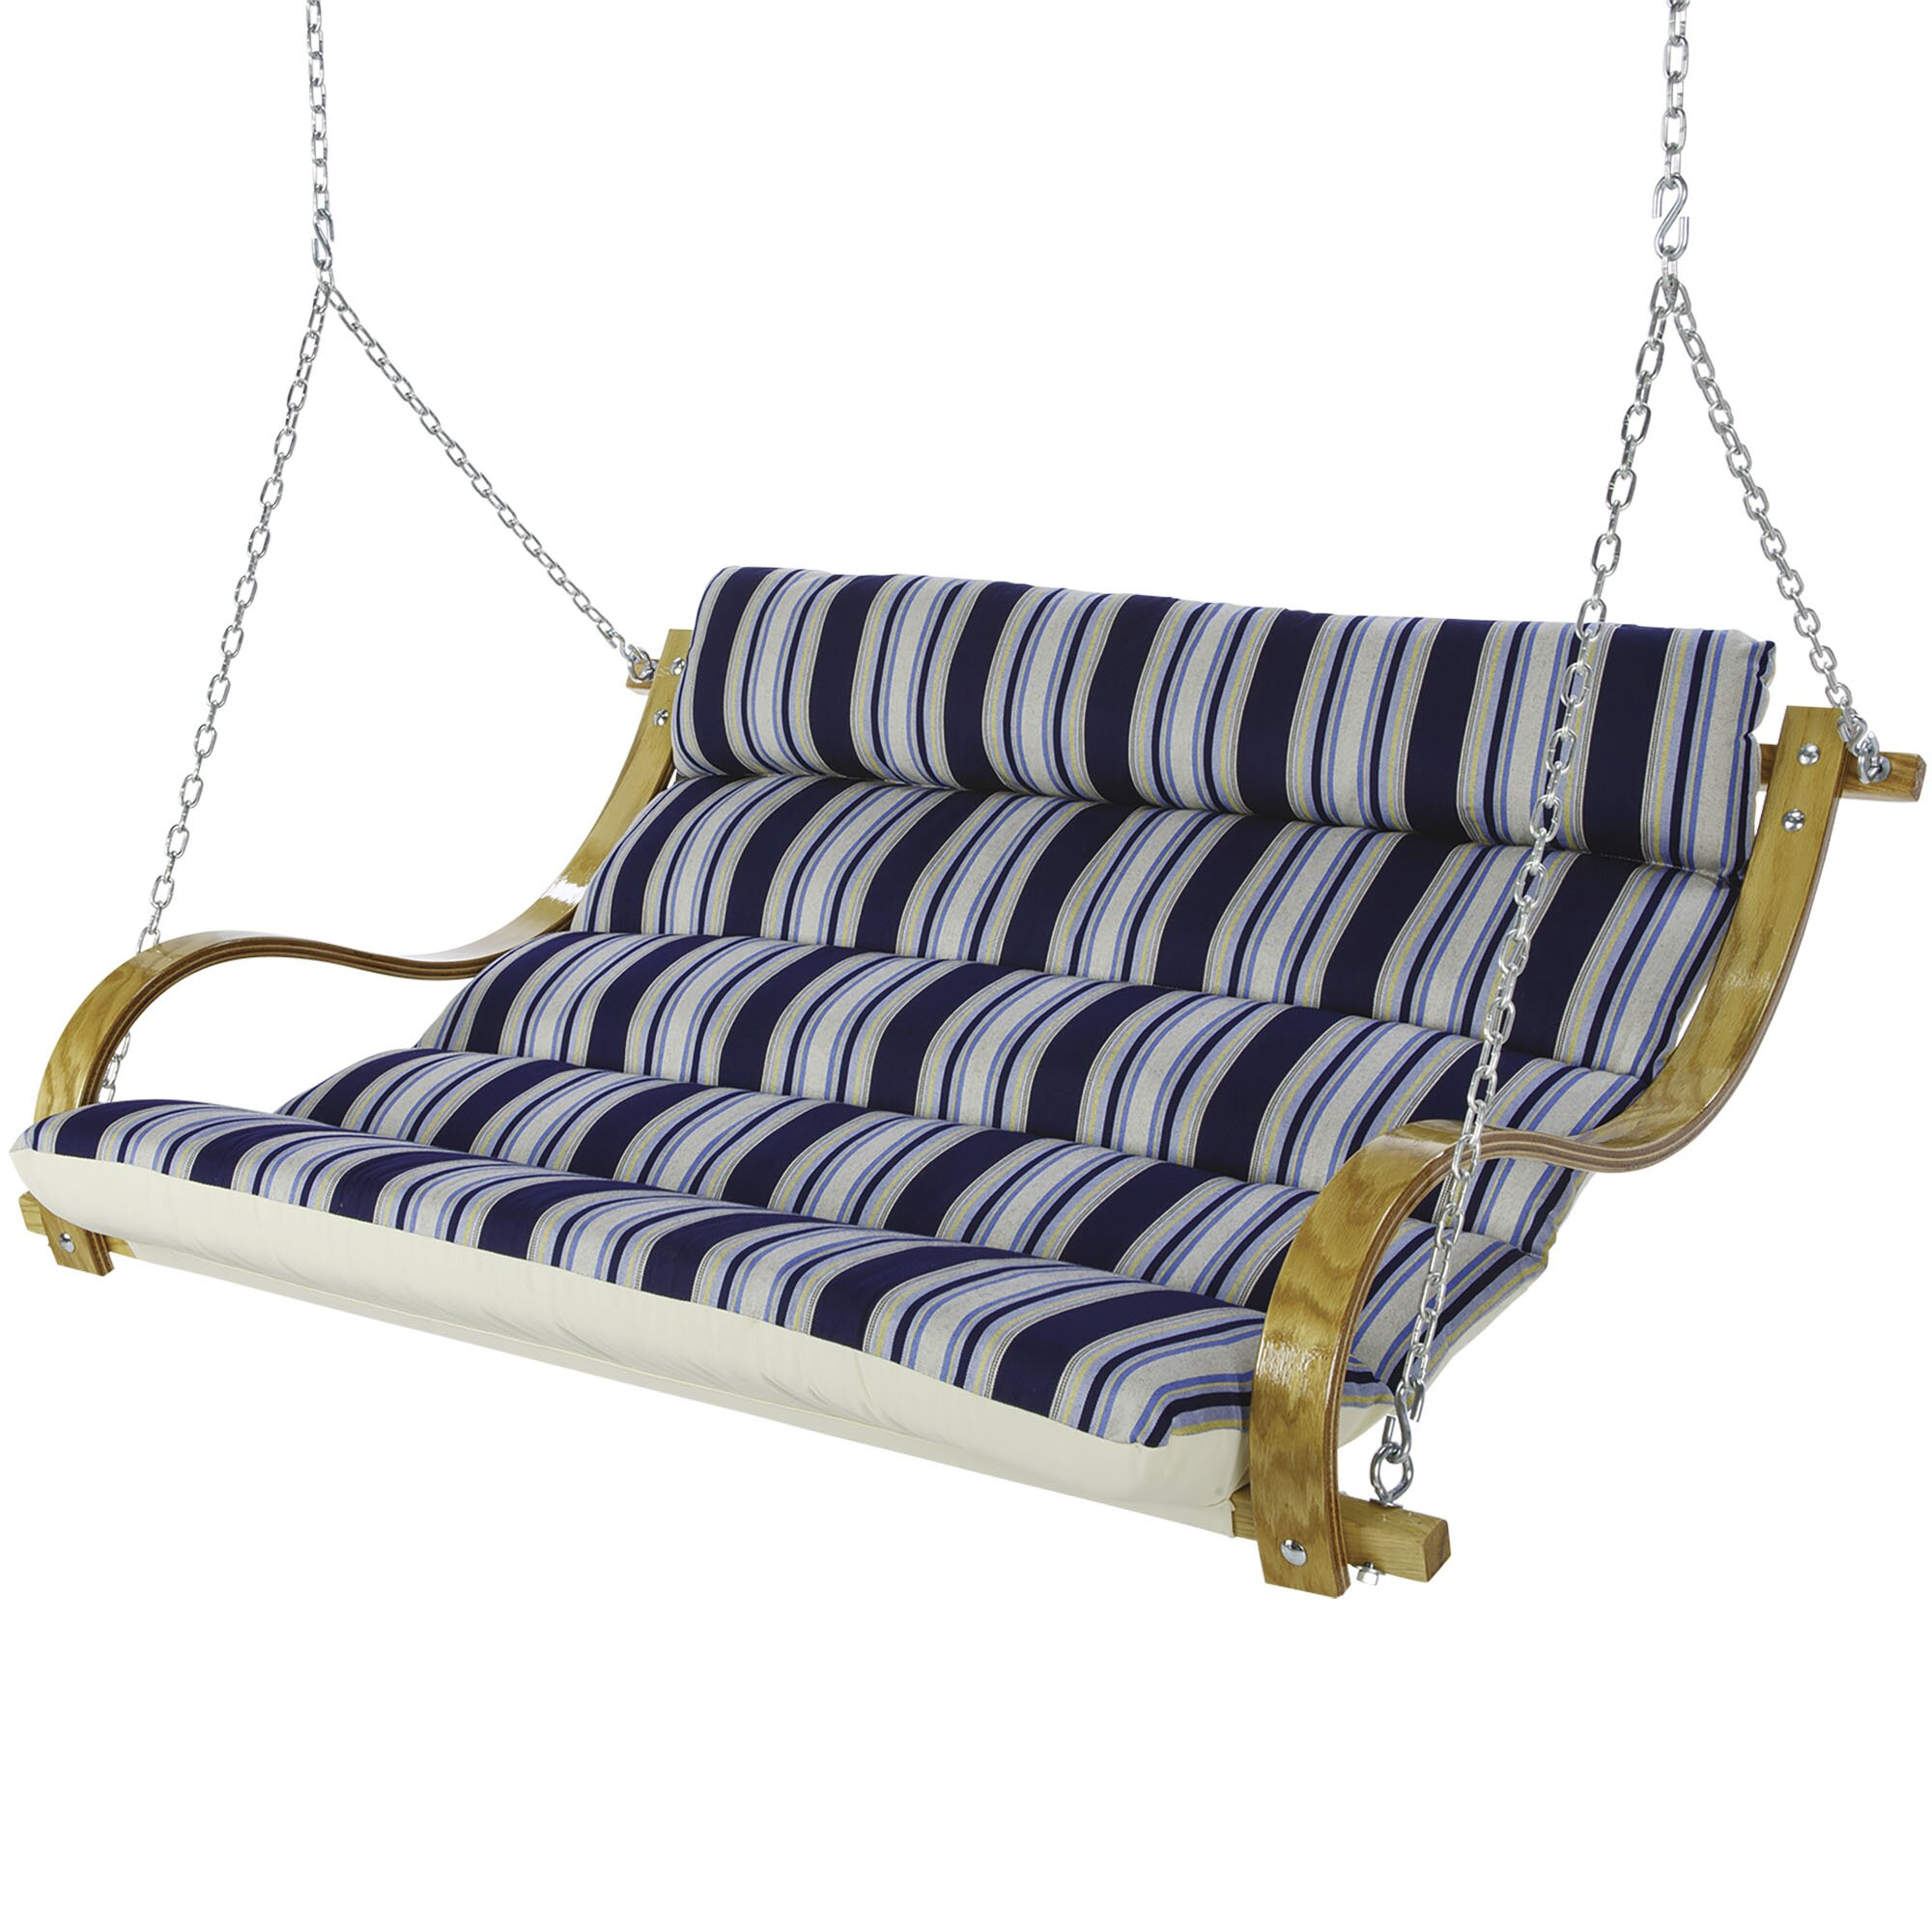 Hatteras Hammocks Deluxe Cushioned Double Porch Swing